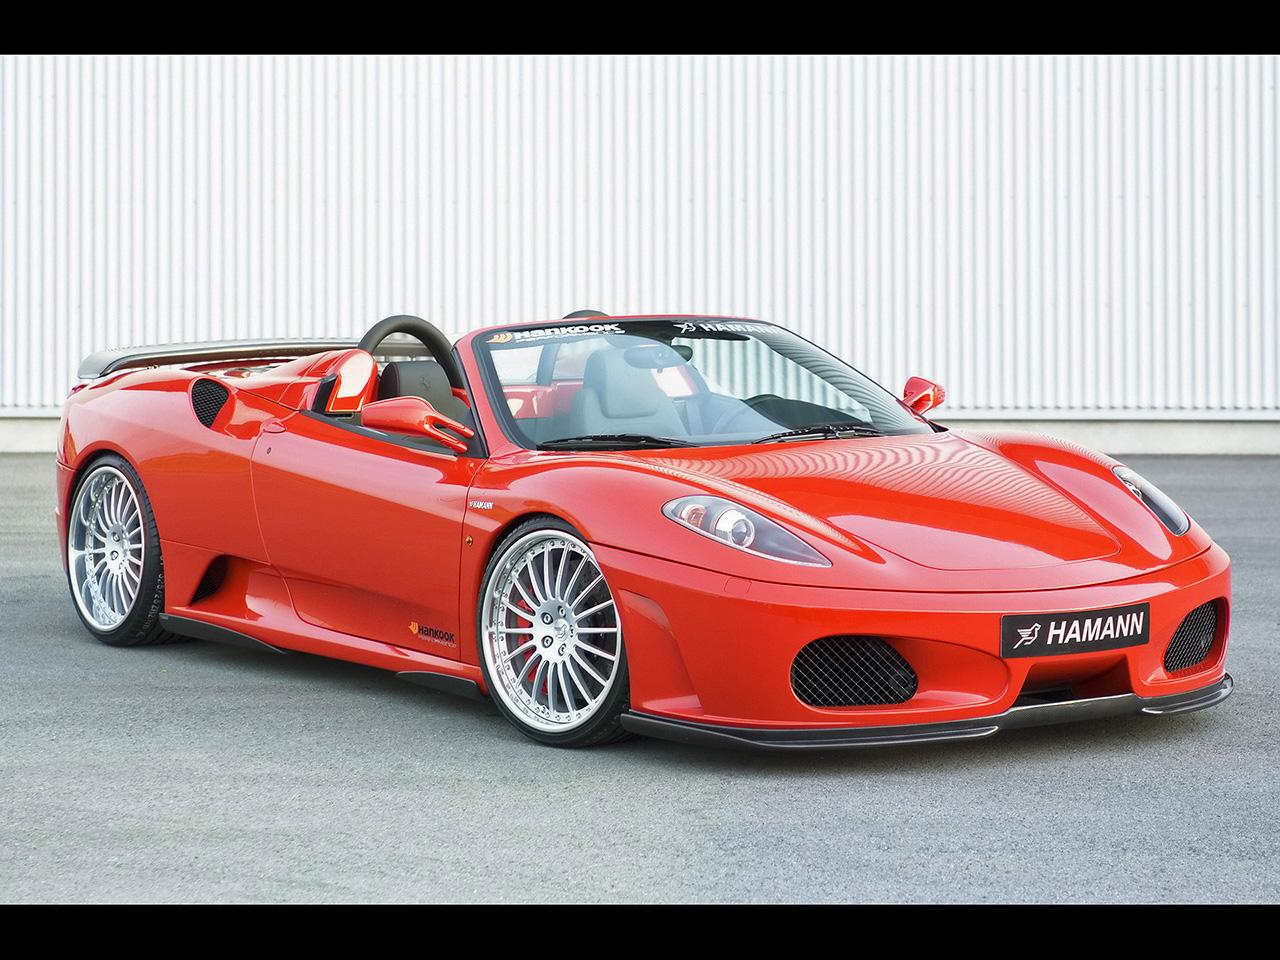 Luxury Ferrari F430 Wallpaper